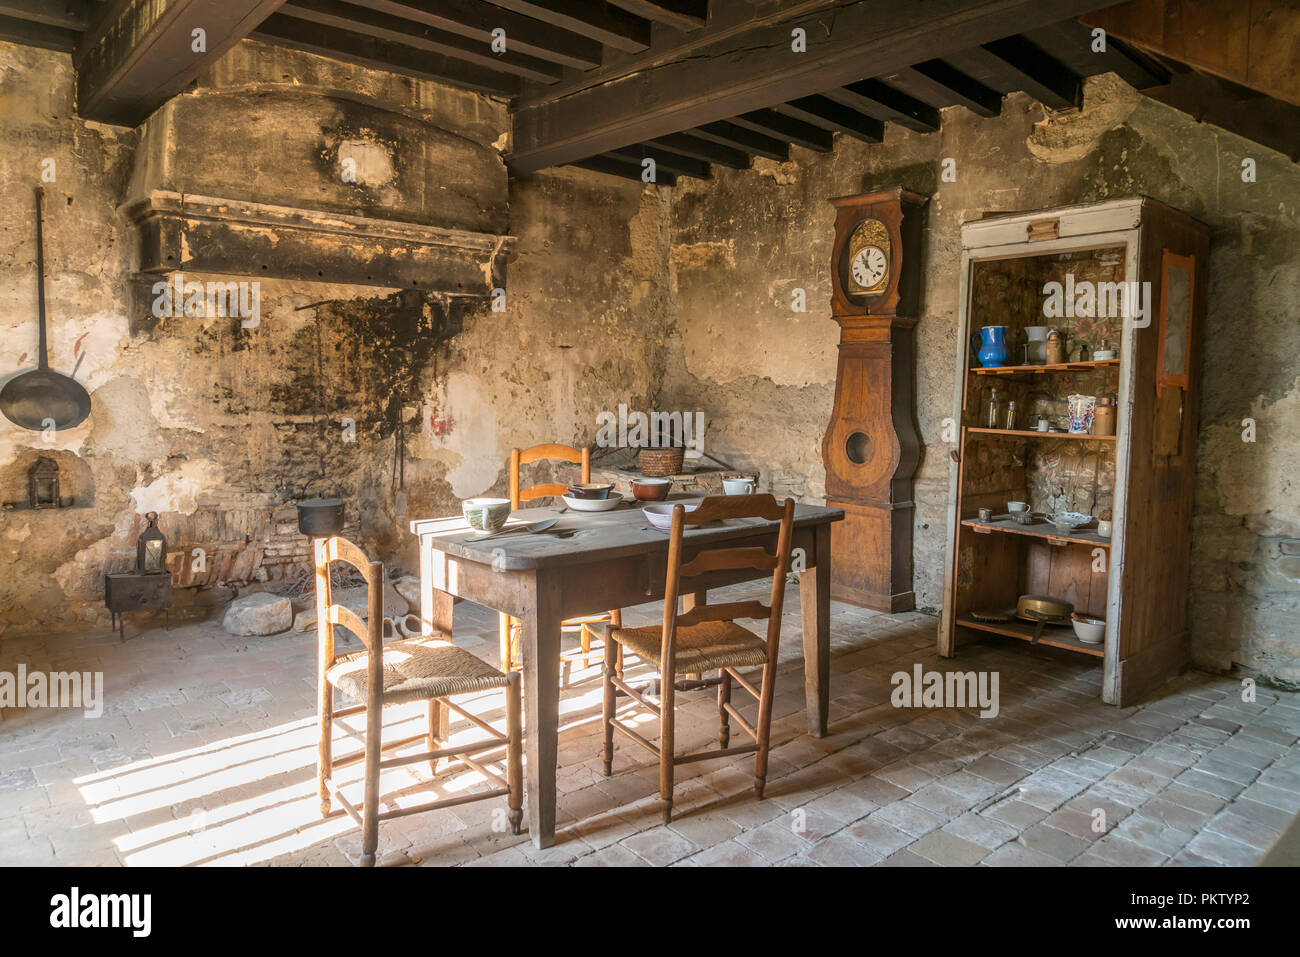 Maison du Saint Cure d'Ars at Ars-sur-Formans, Auvergne-Rhone-Alpes, France - Stock Image